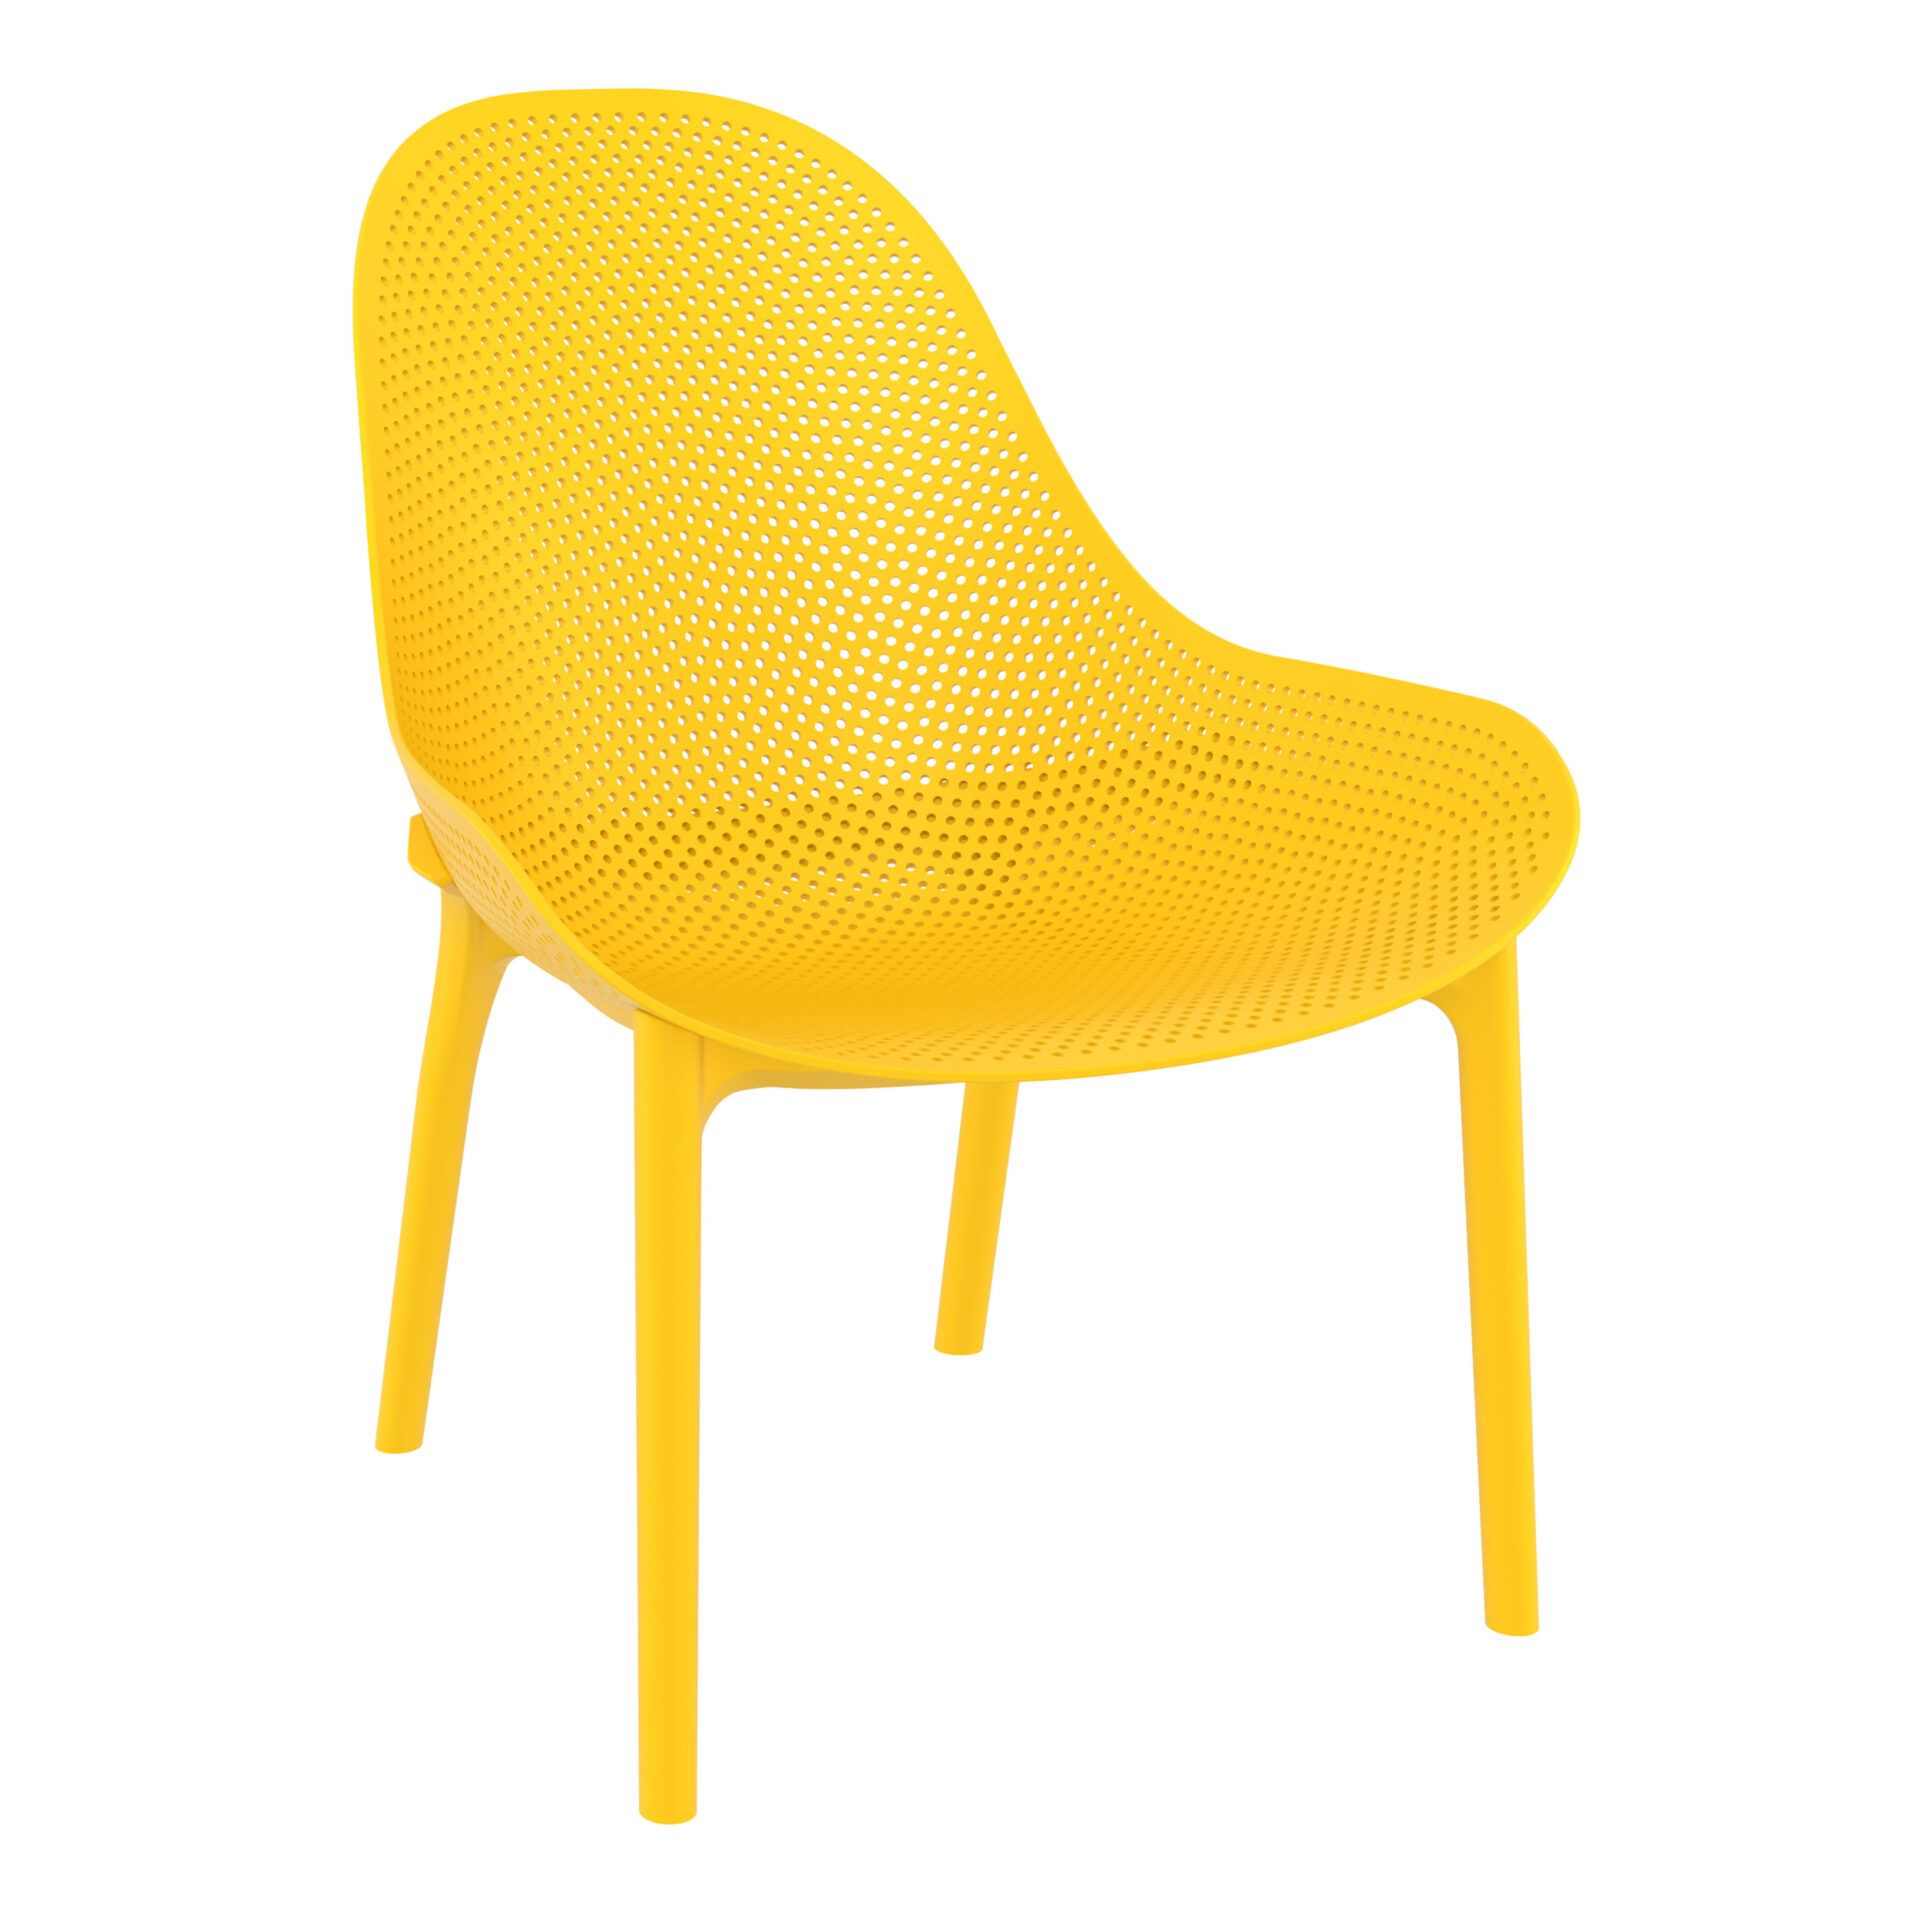 outdoor seating polypropylene sky lounge yellow front side